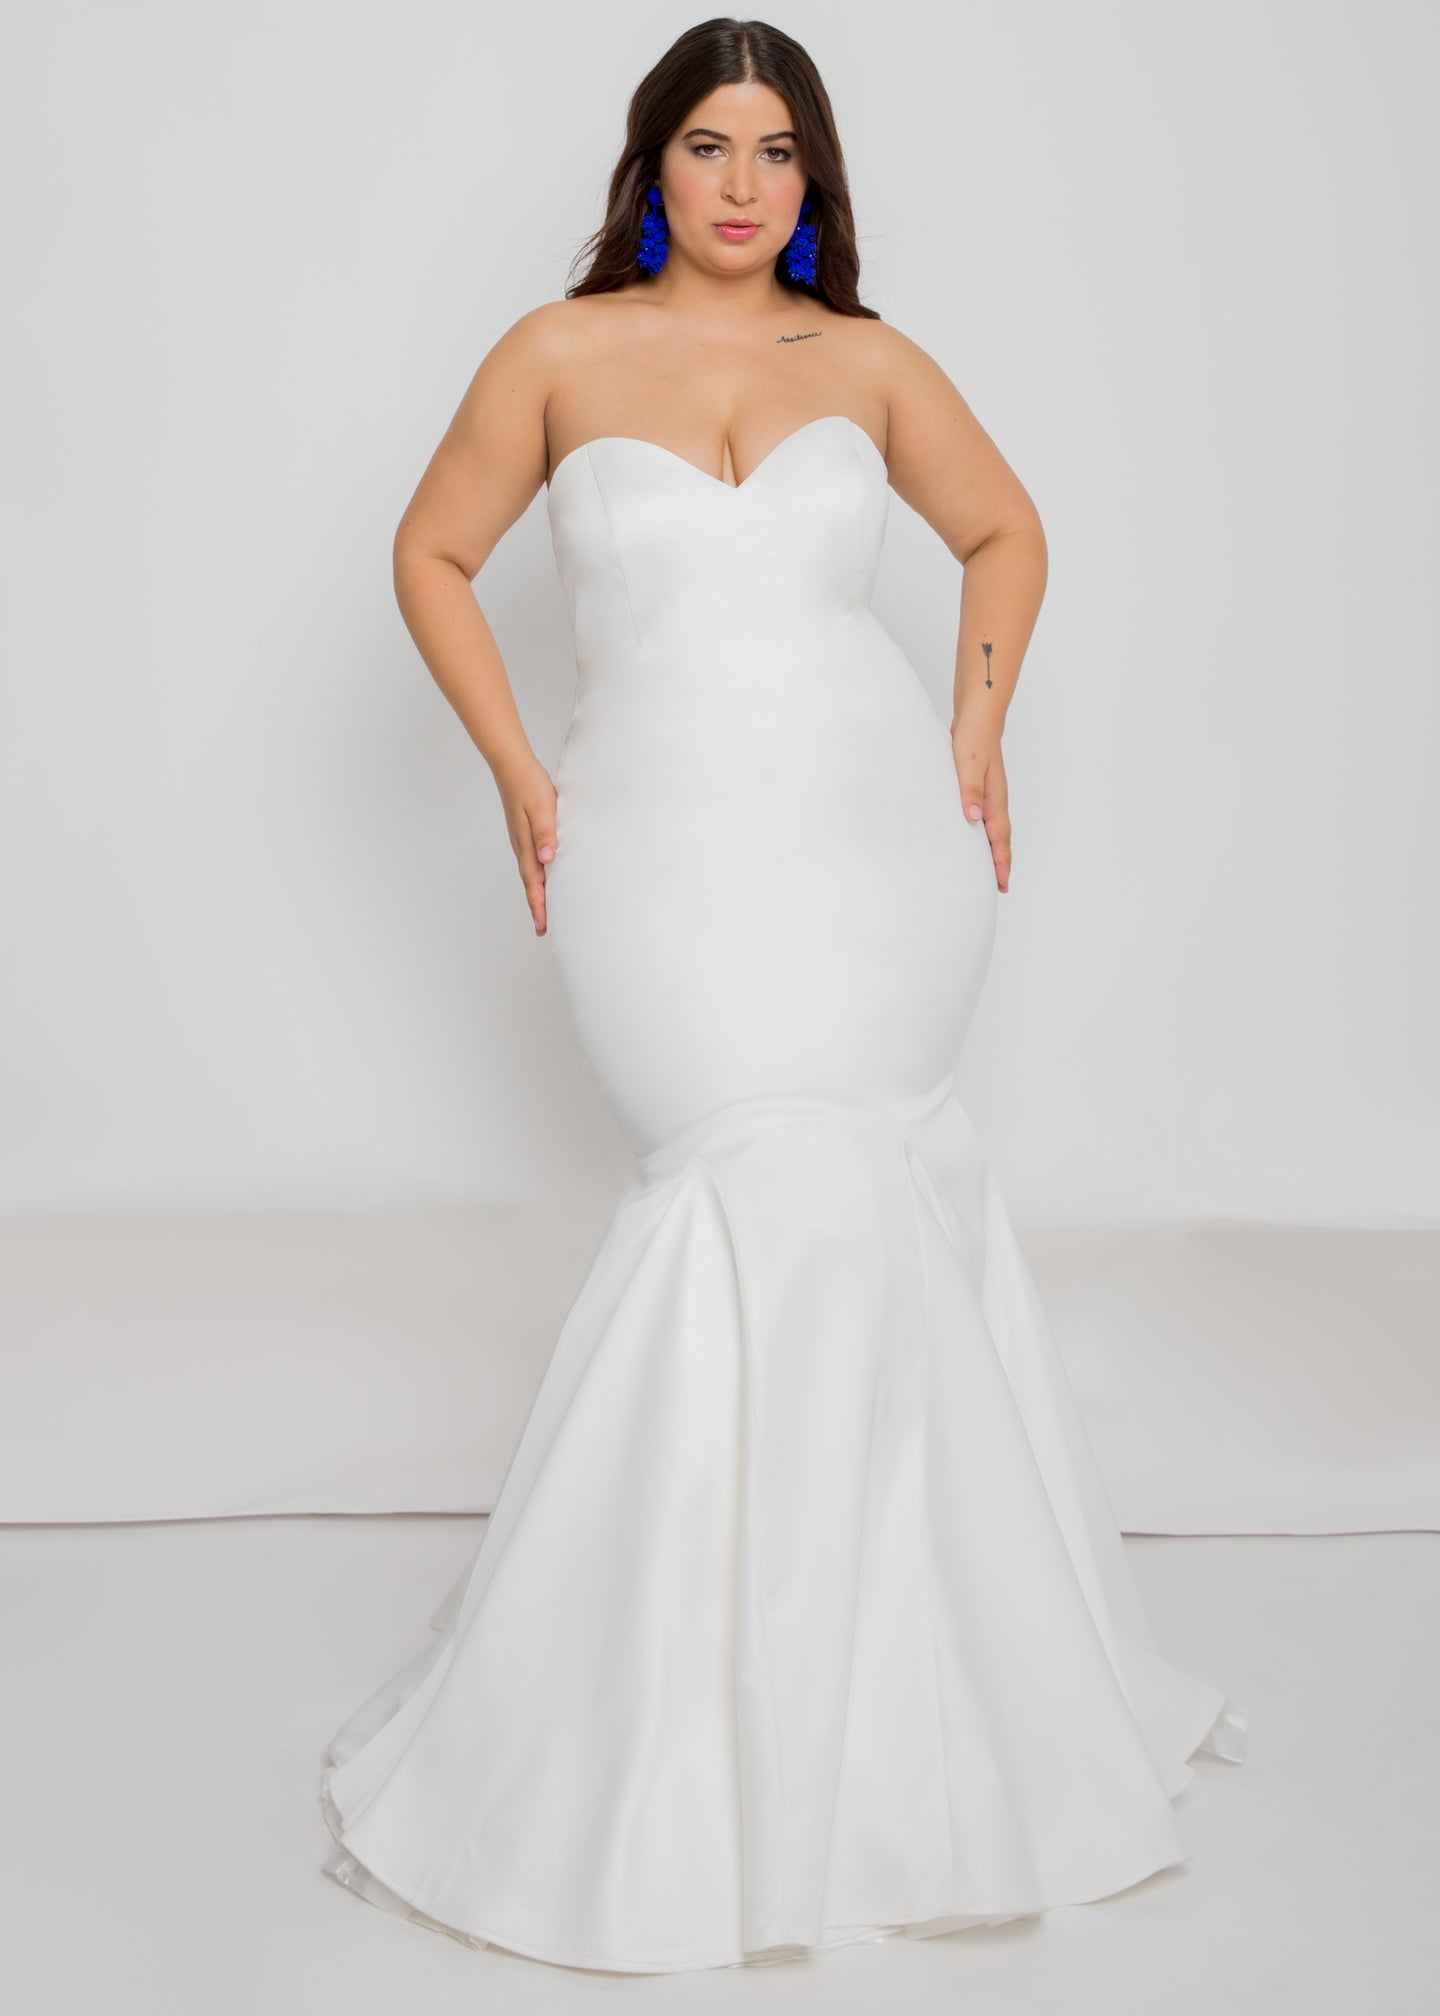 Gorgeous bridal gowns for all body shapes: plus size, curvy, or petite brides. Try on our wedding dresses at home. Size 0-30. Comfortable. Convenient. Fun. Lace or satin. Mermaid or A-line. This strapless satin top has a simple semi-sweetheart neckline and trumpet skirt bring this dress to life. While it's fitted and figure-flattering, it still offers stunning movement.